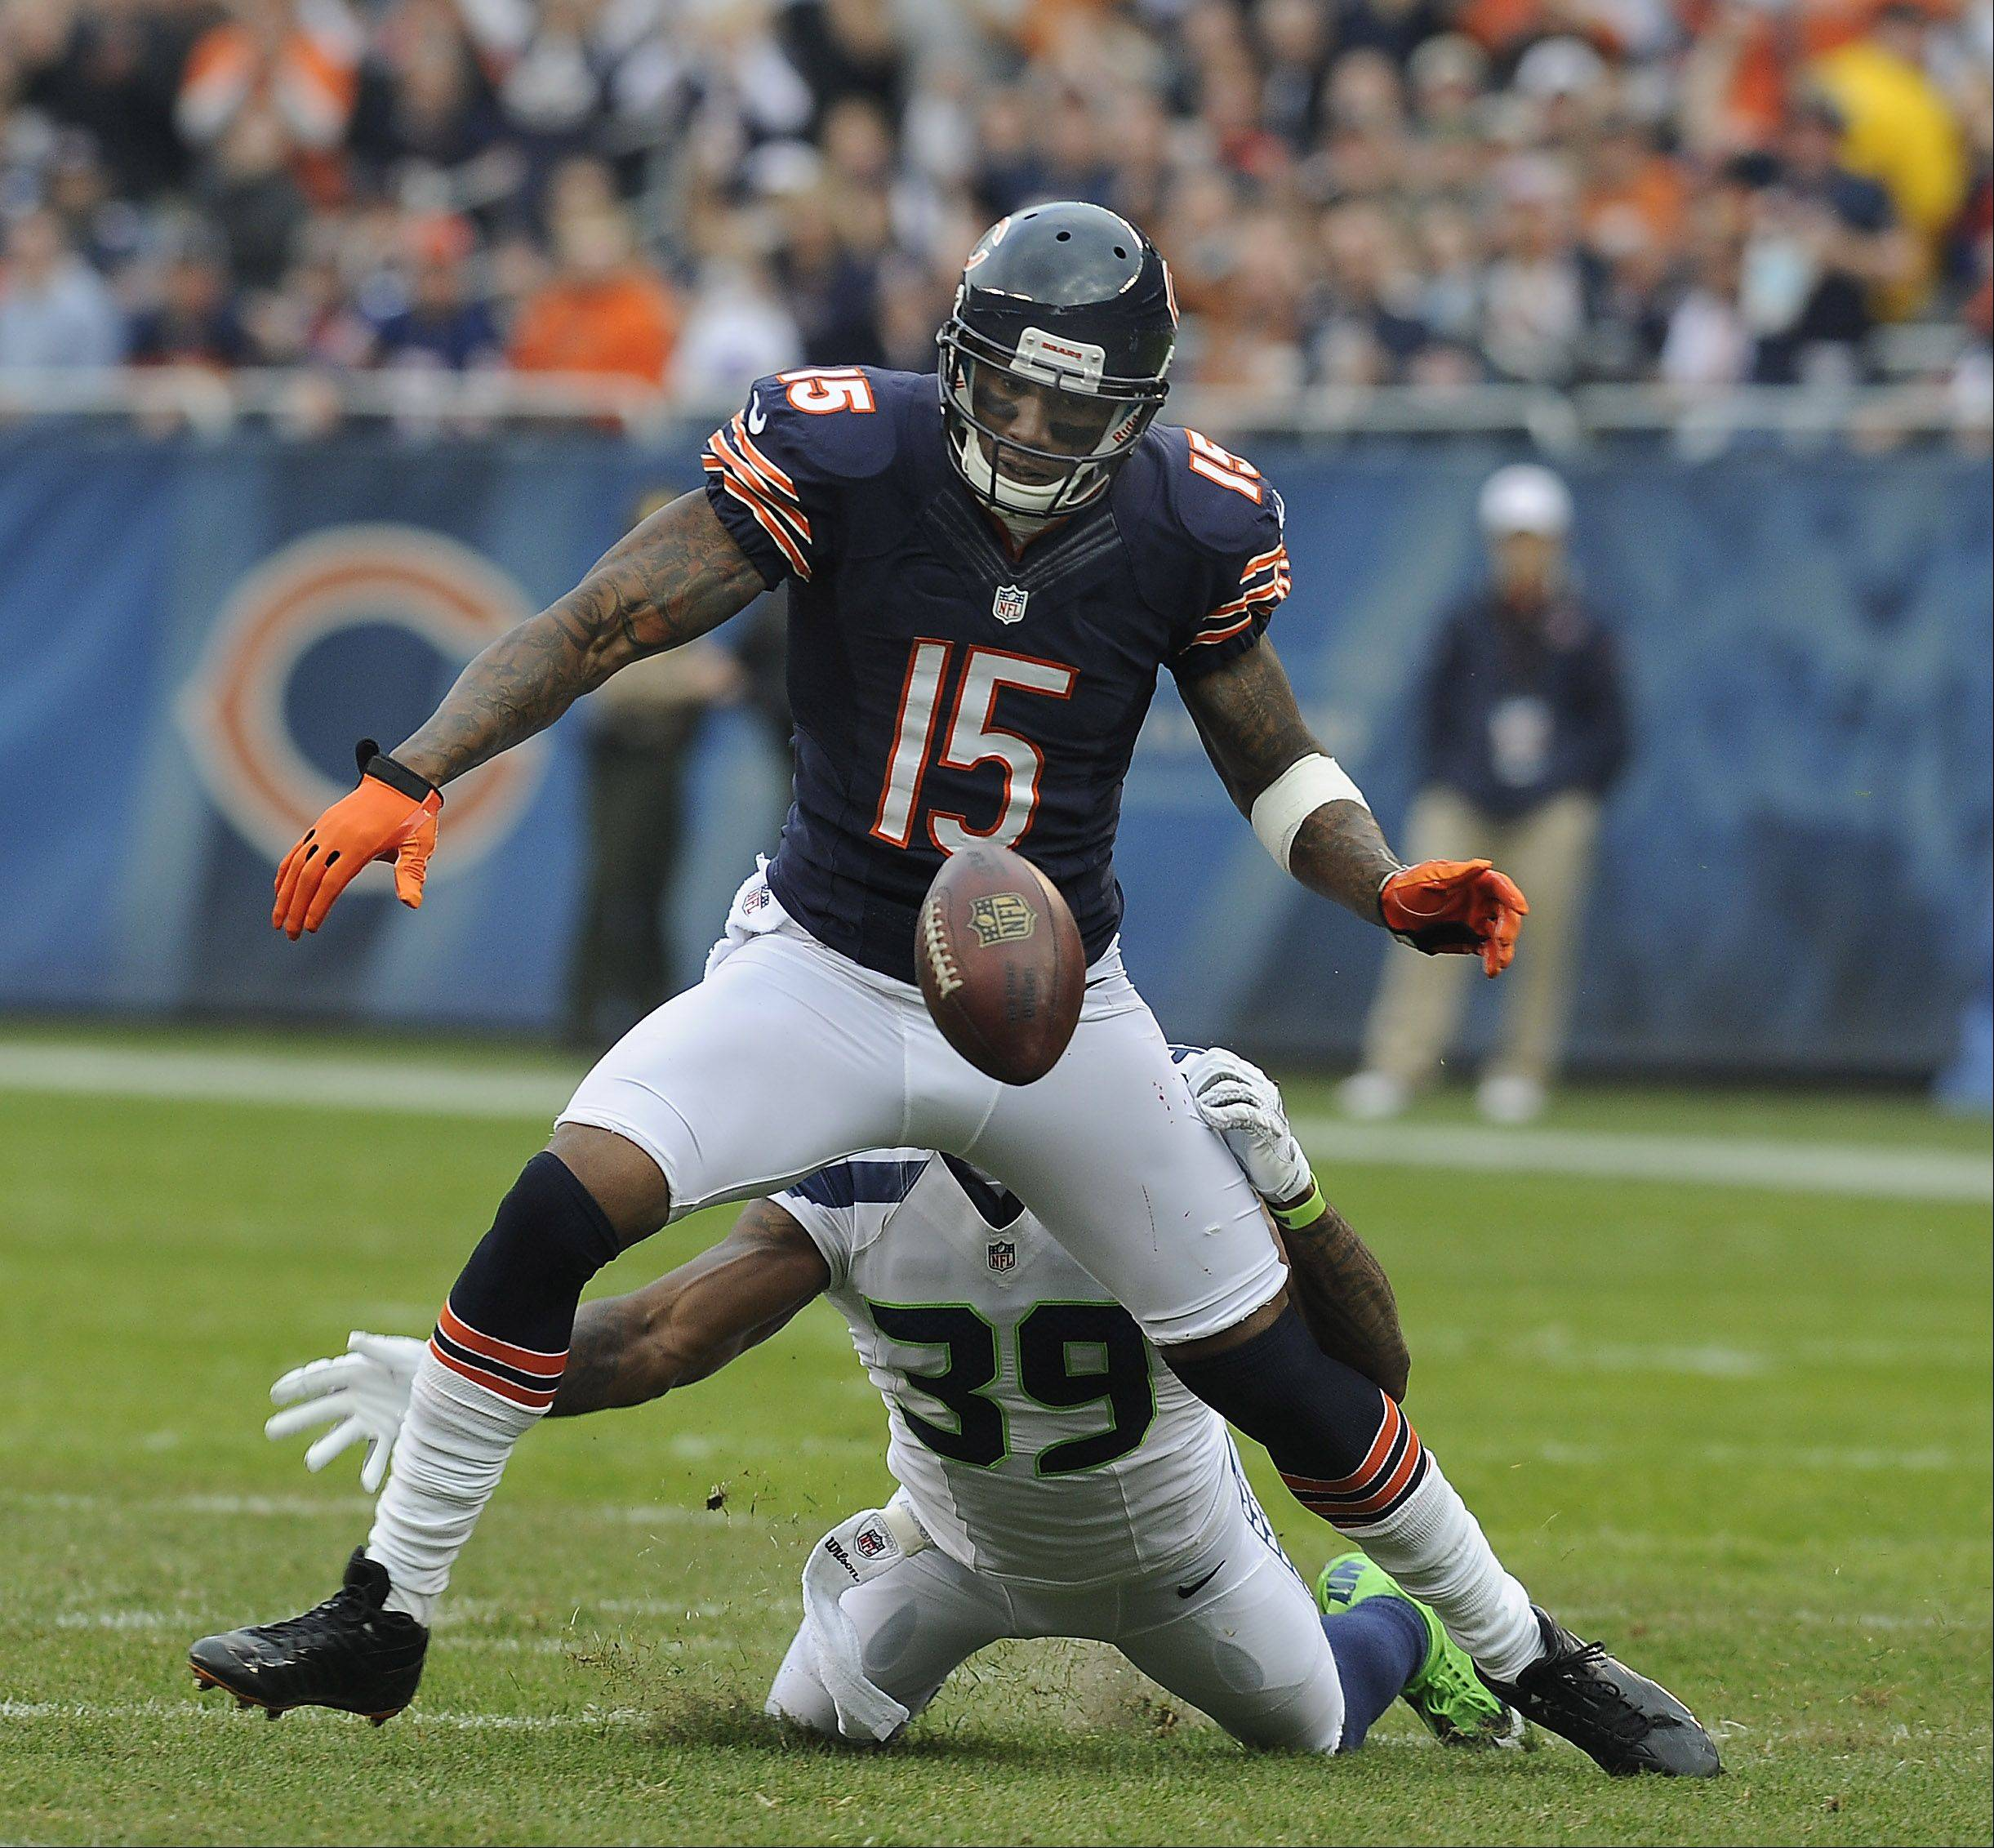 Brandon Marshall fumbles but was able to recover for a 34-yard gain in the first quarter Sunday at Soldier Field. Marshall finished with 10 catches for 165 yards.